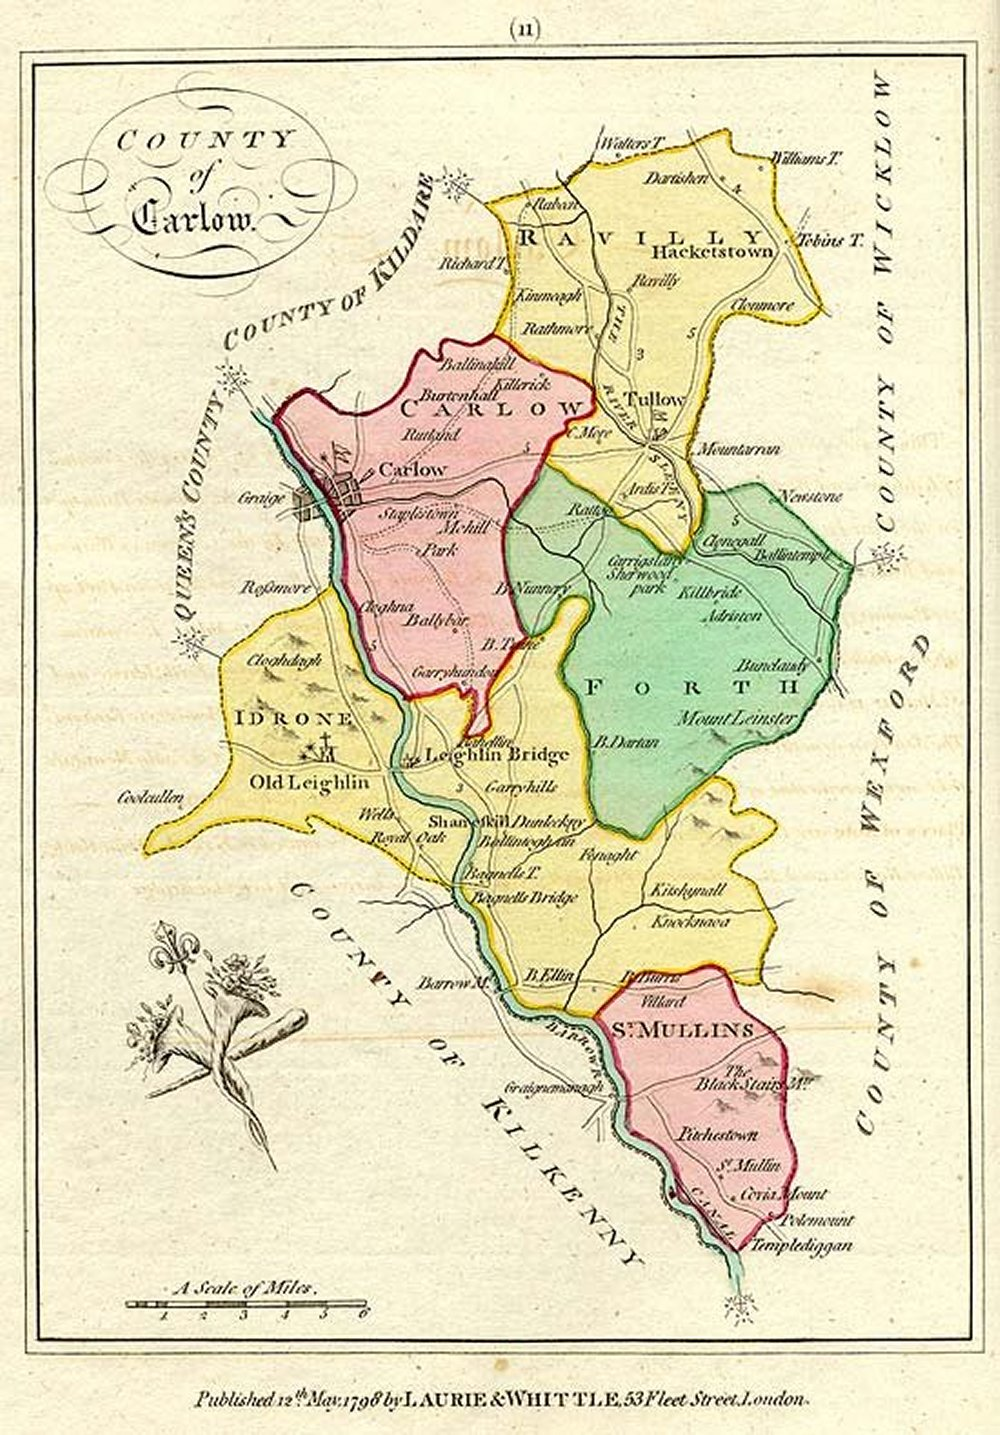 A Collection Of Maps And Drawings Of County Carlow